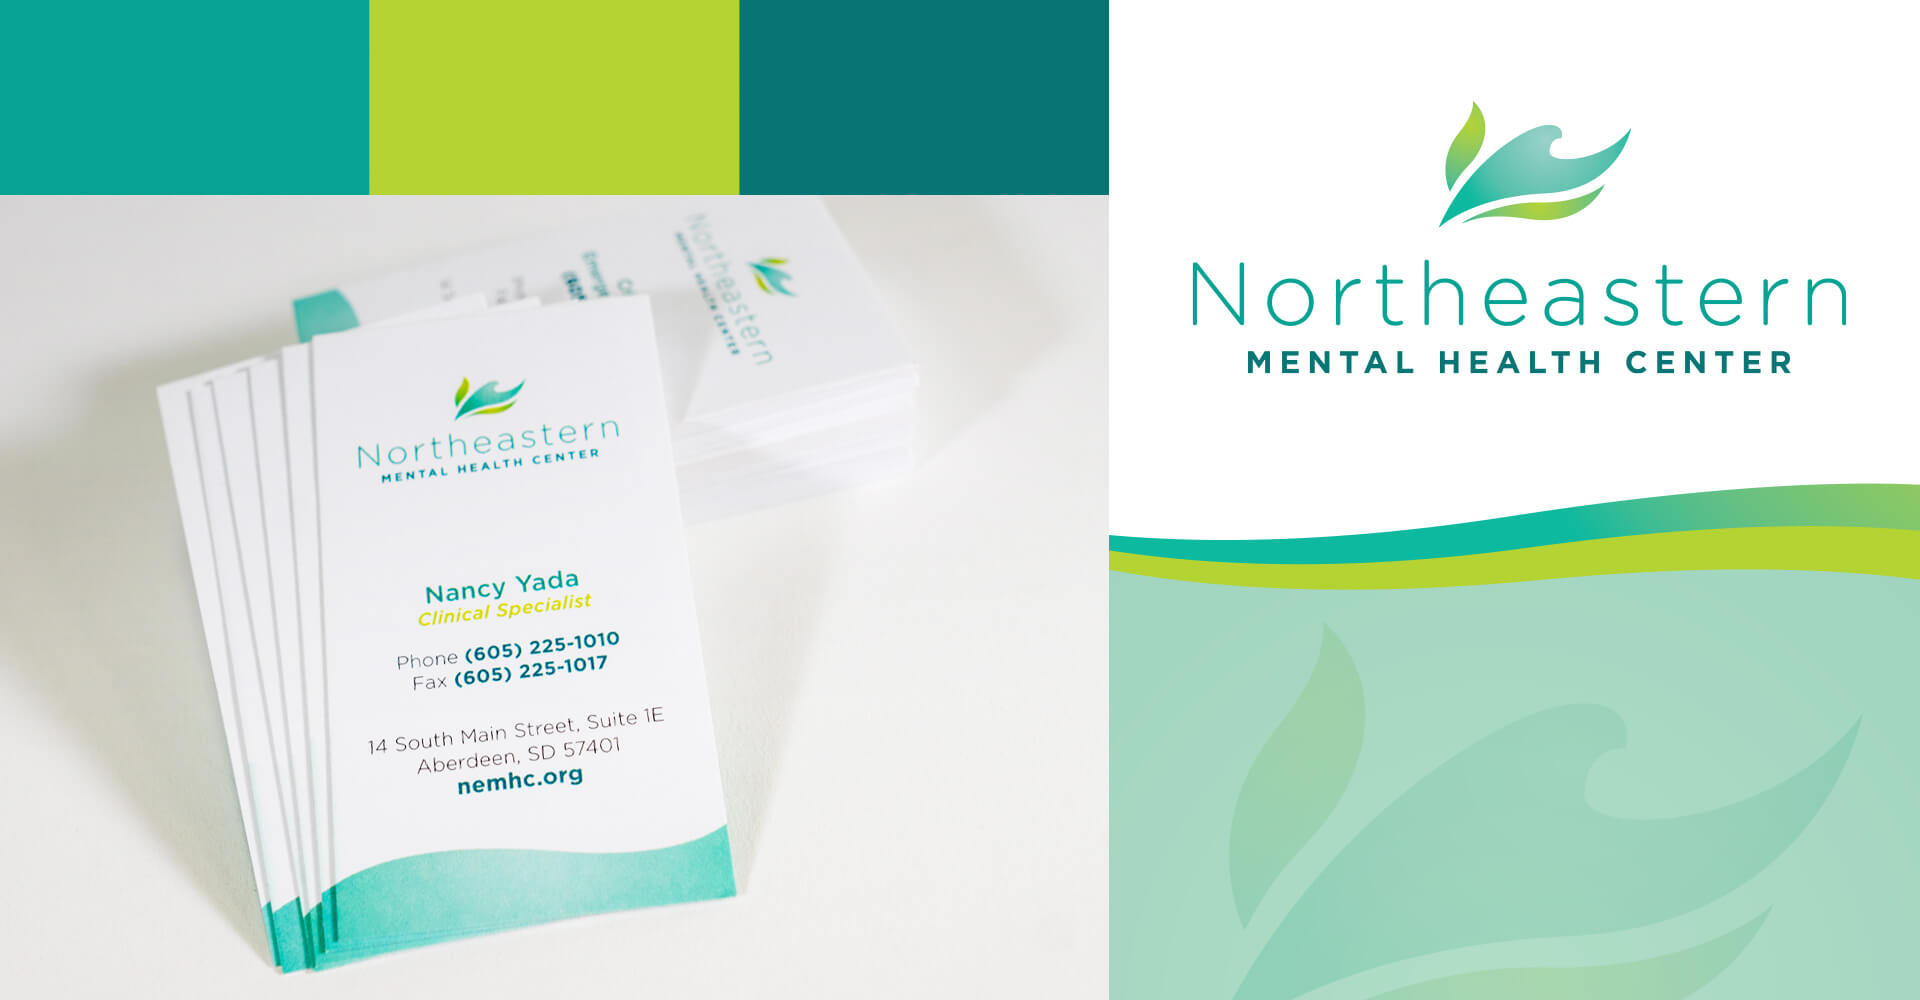 Northeastern Mental Health Center logo and brand and business cards